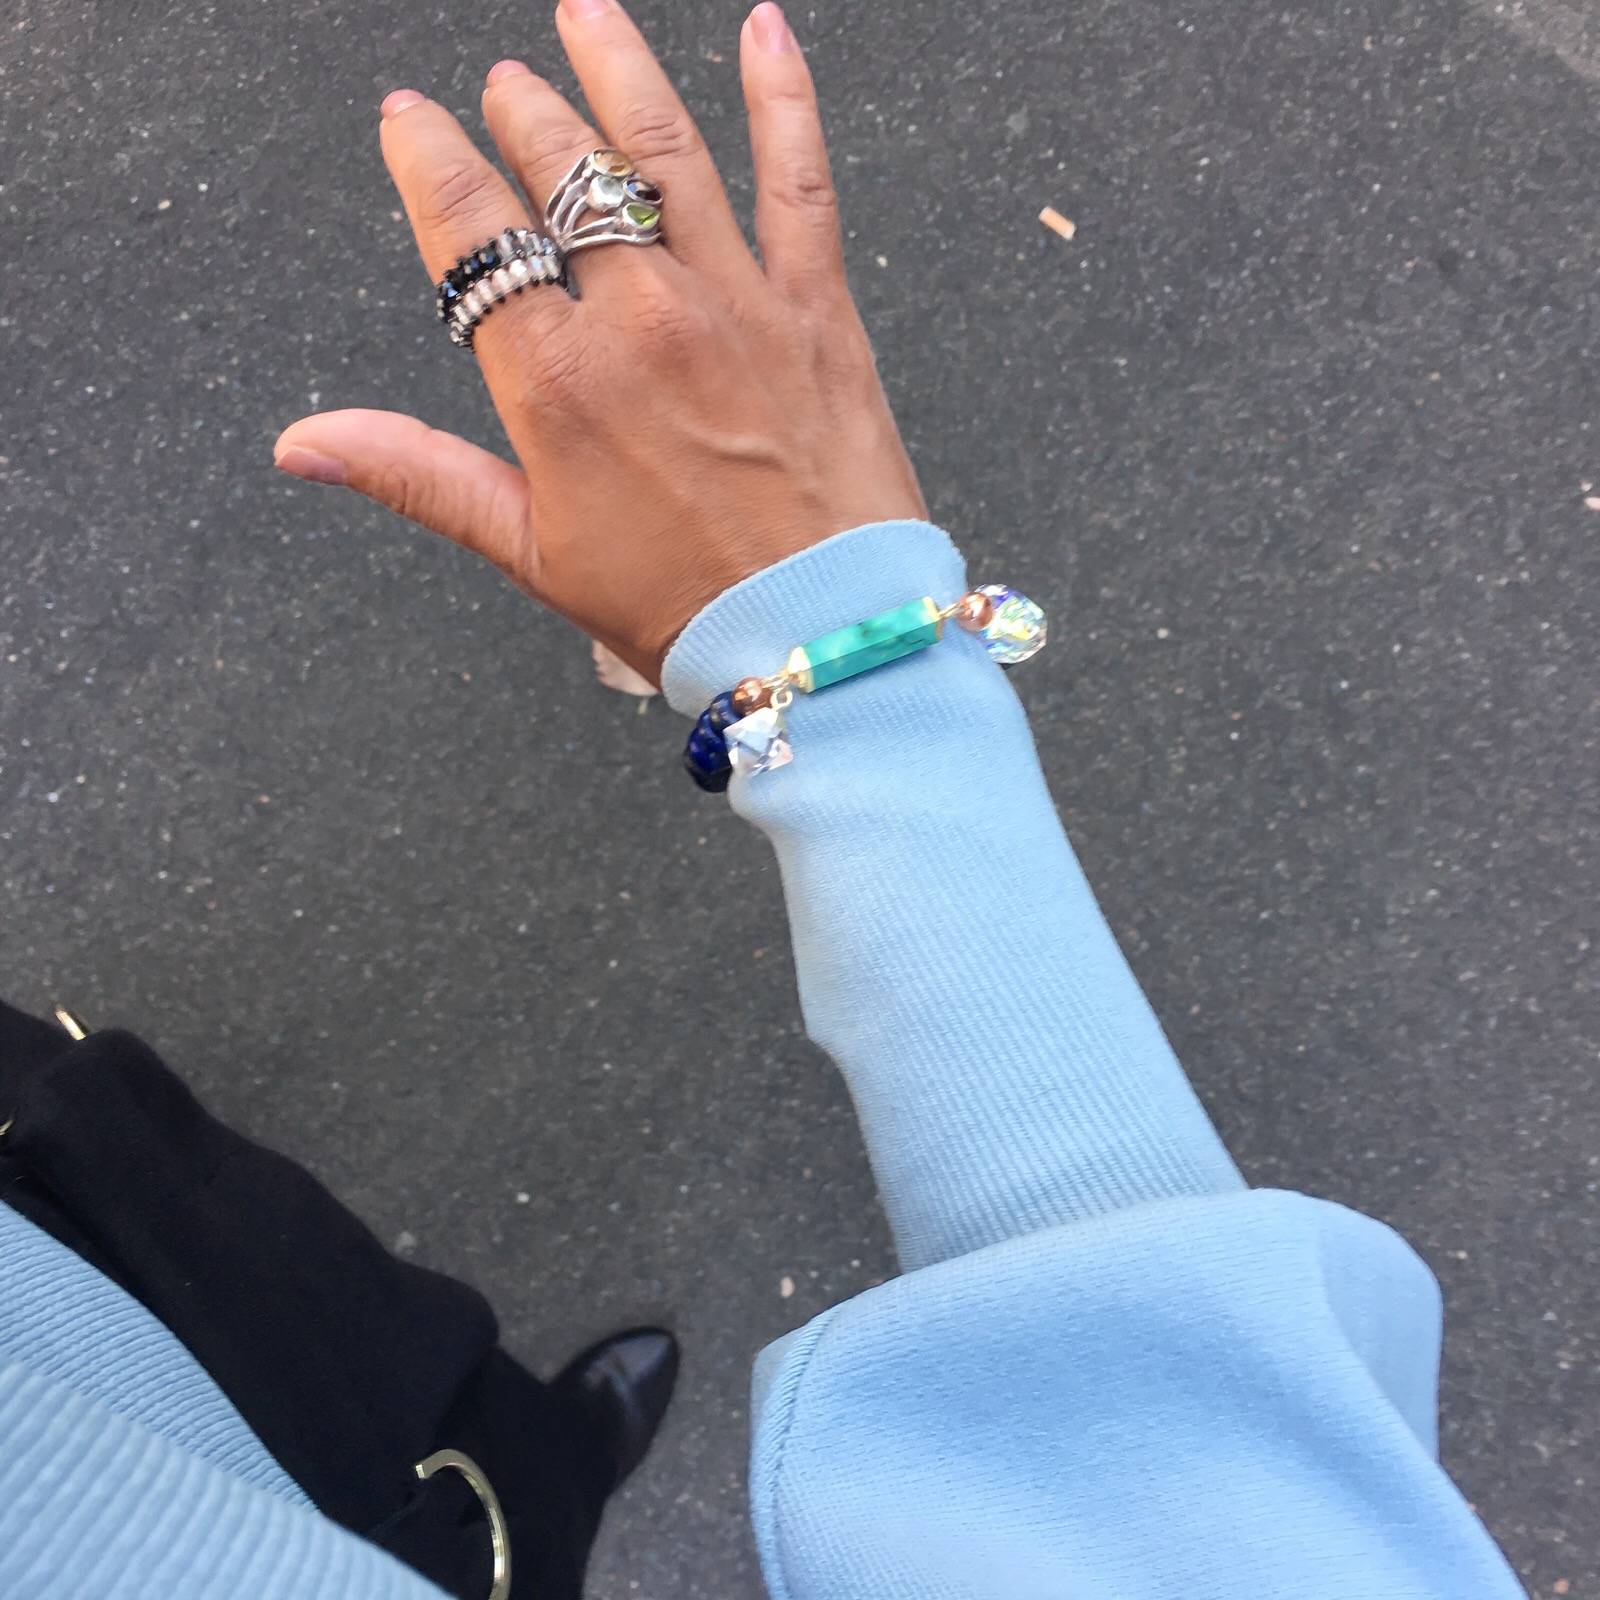 Styling your bracelet so it is part of your outfit. Drawing attention to your wrist and adding a little drama and spark to ones work style.